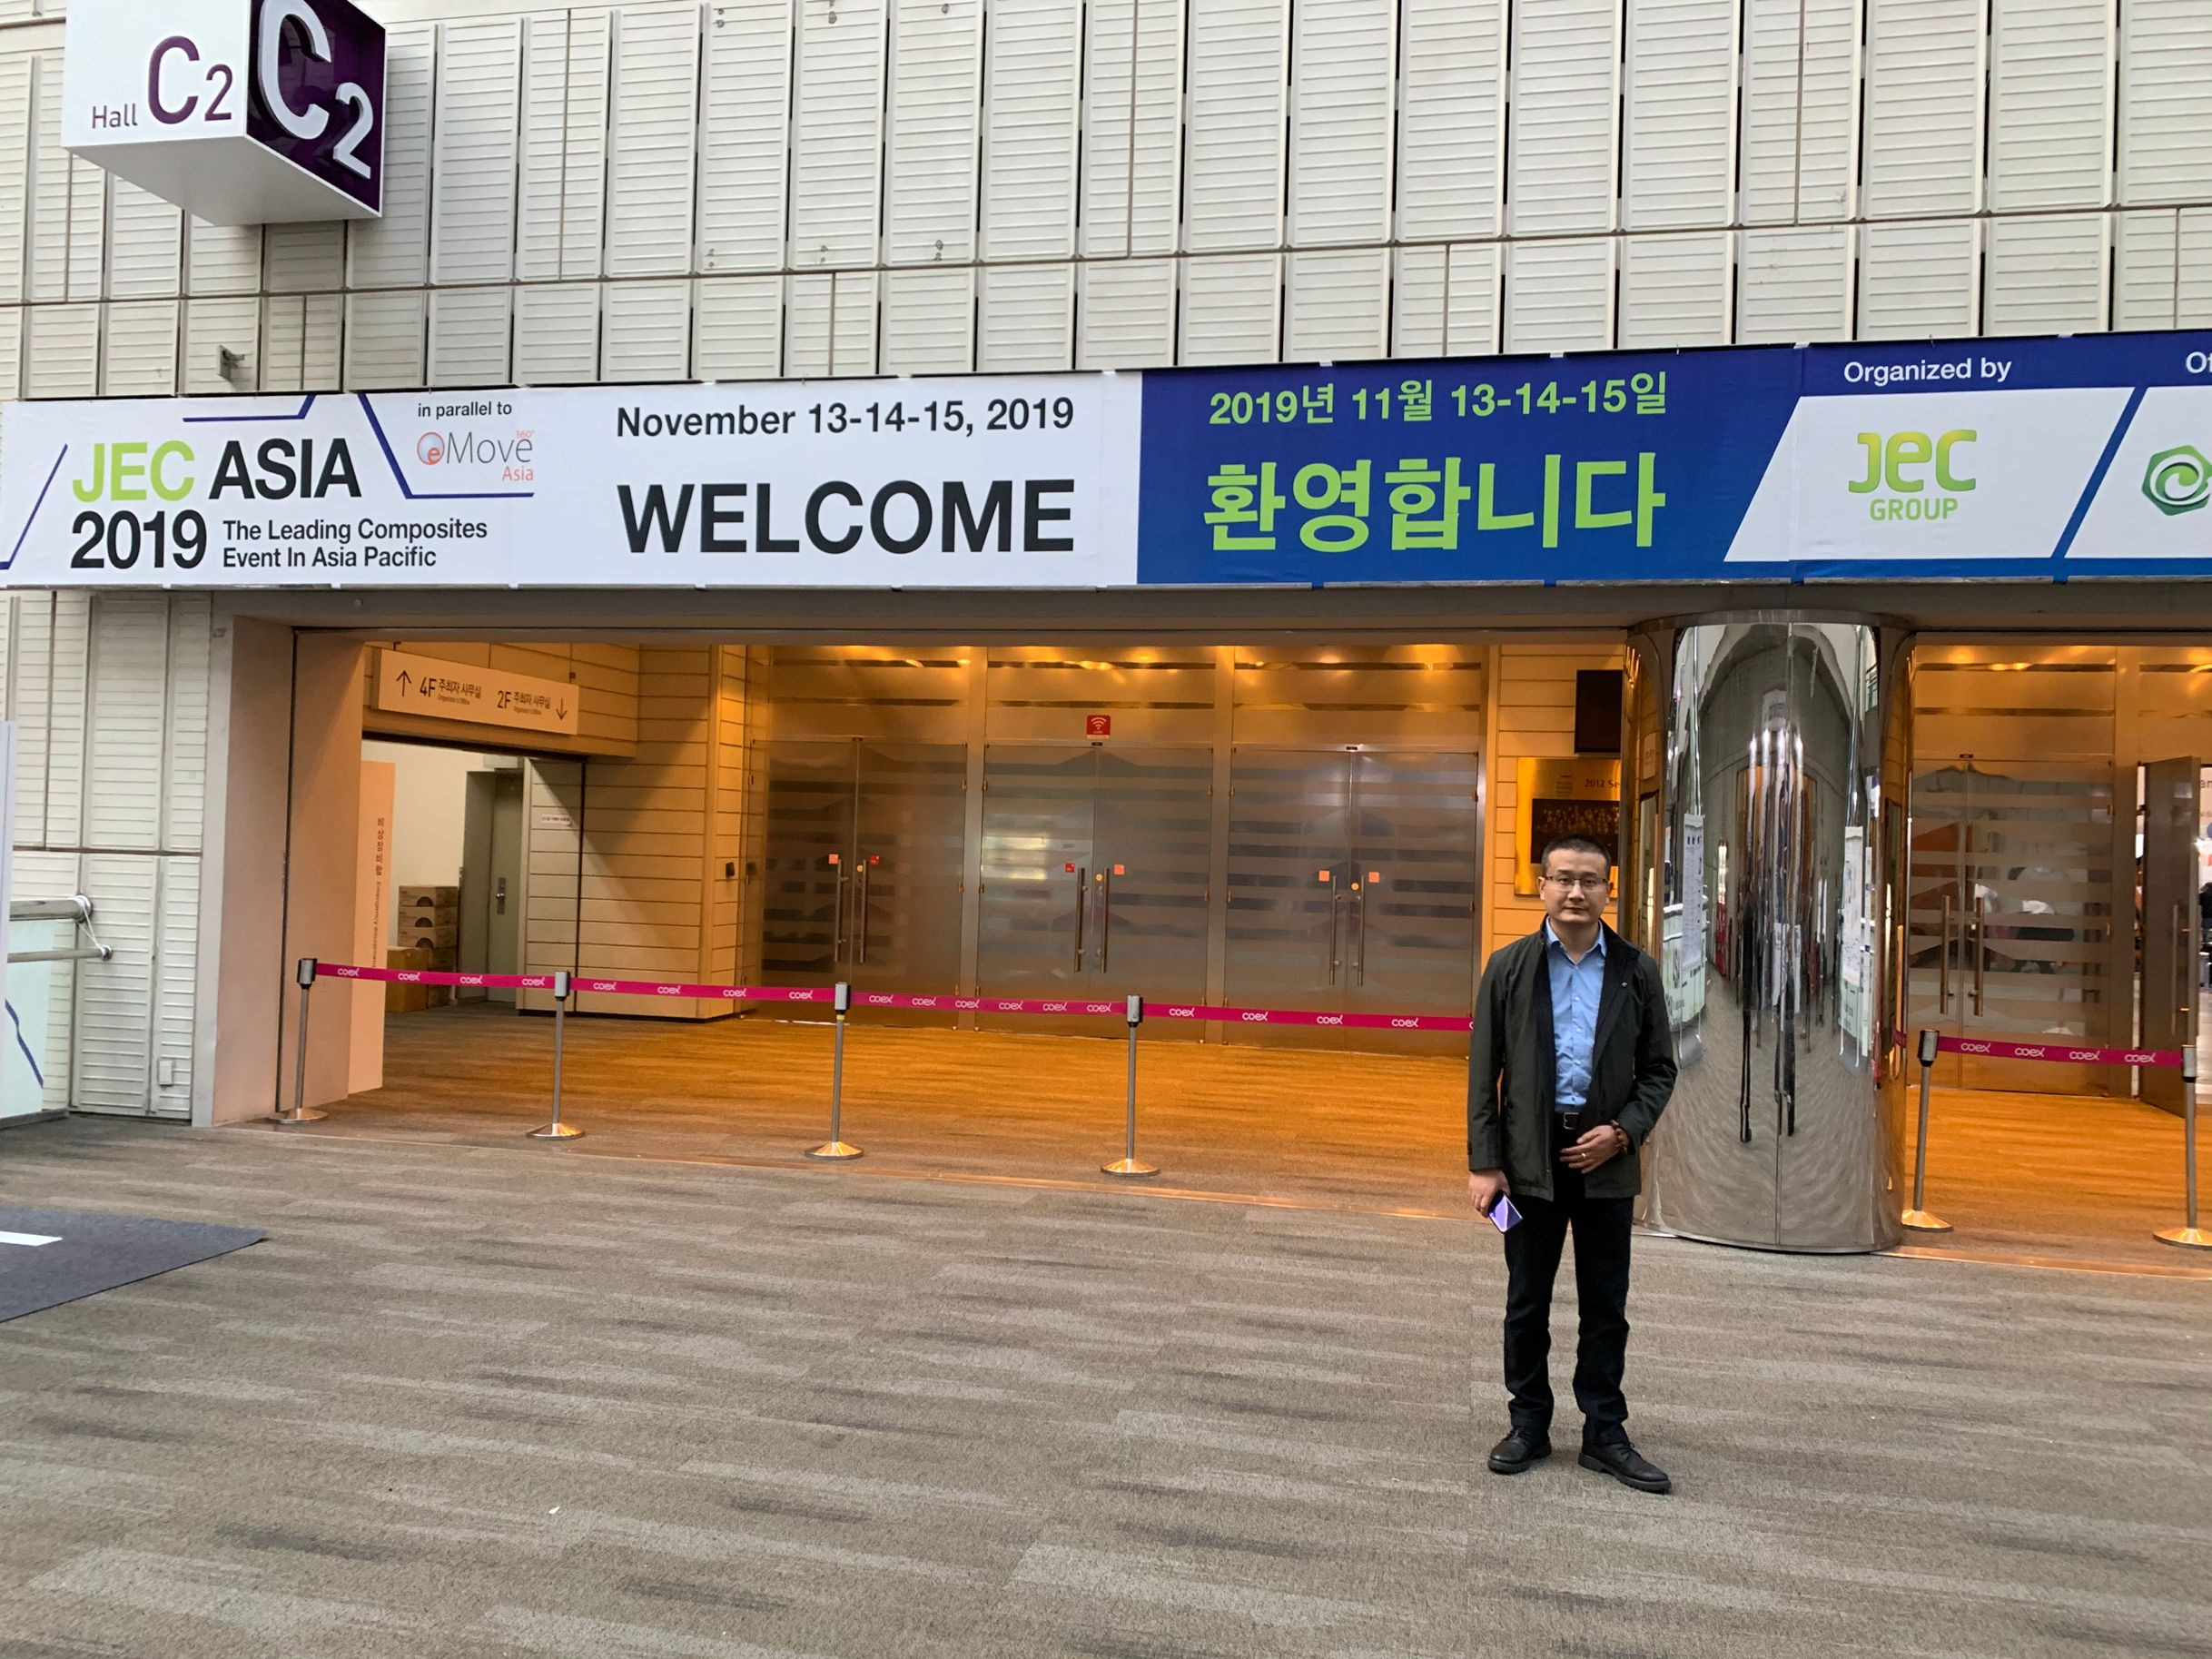 JEC ASIA 2019 International Composites Event